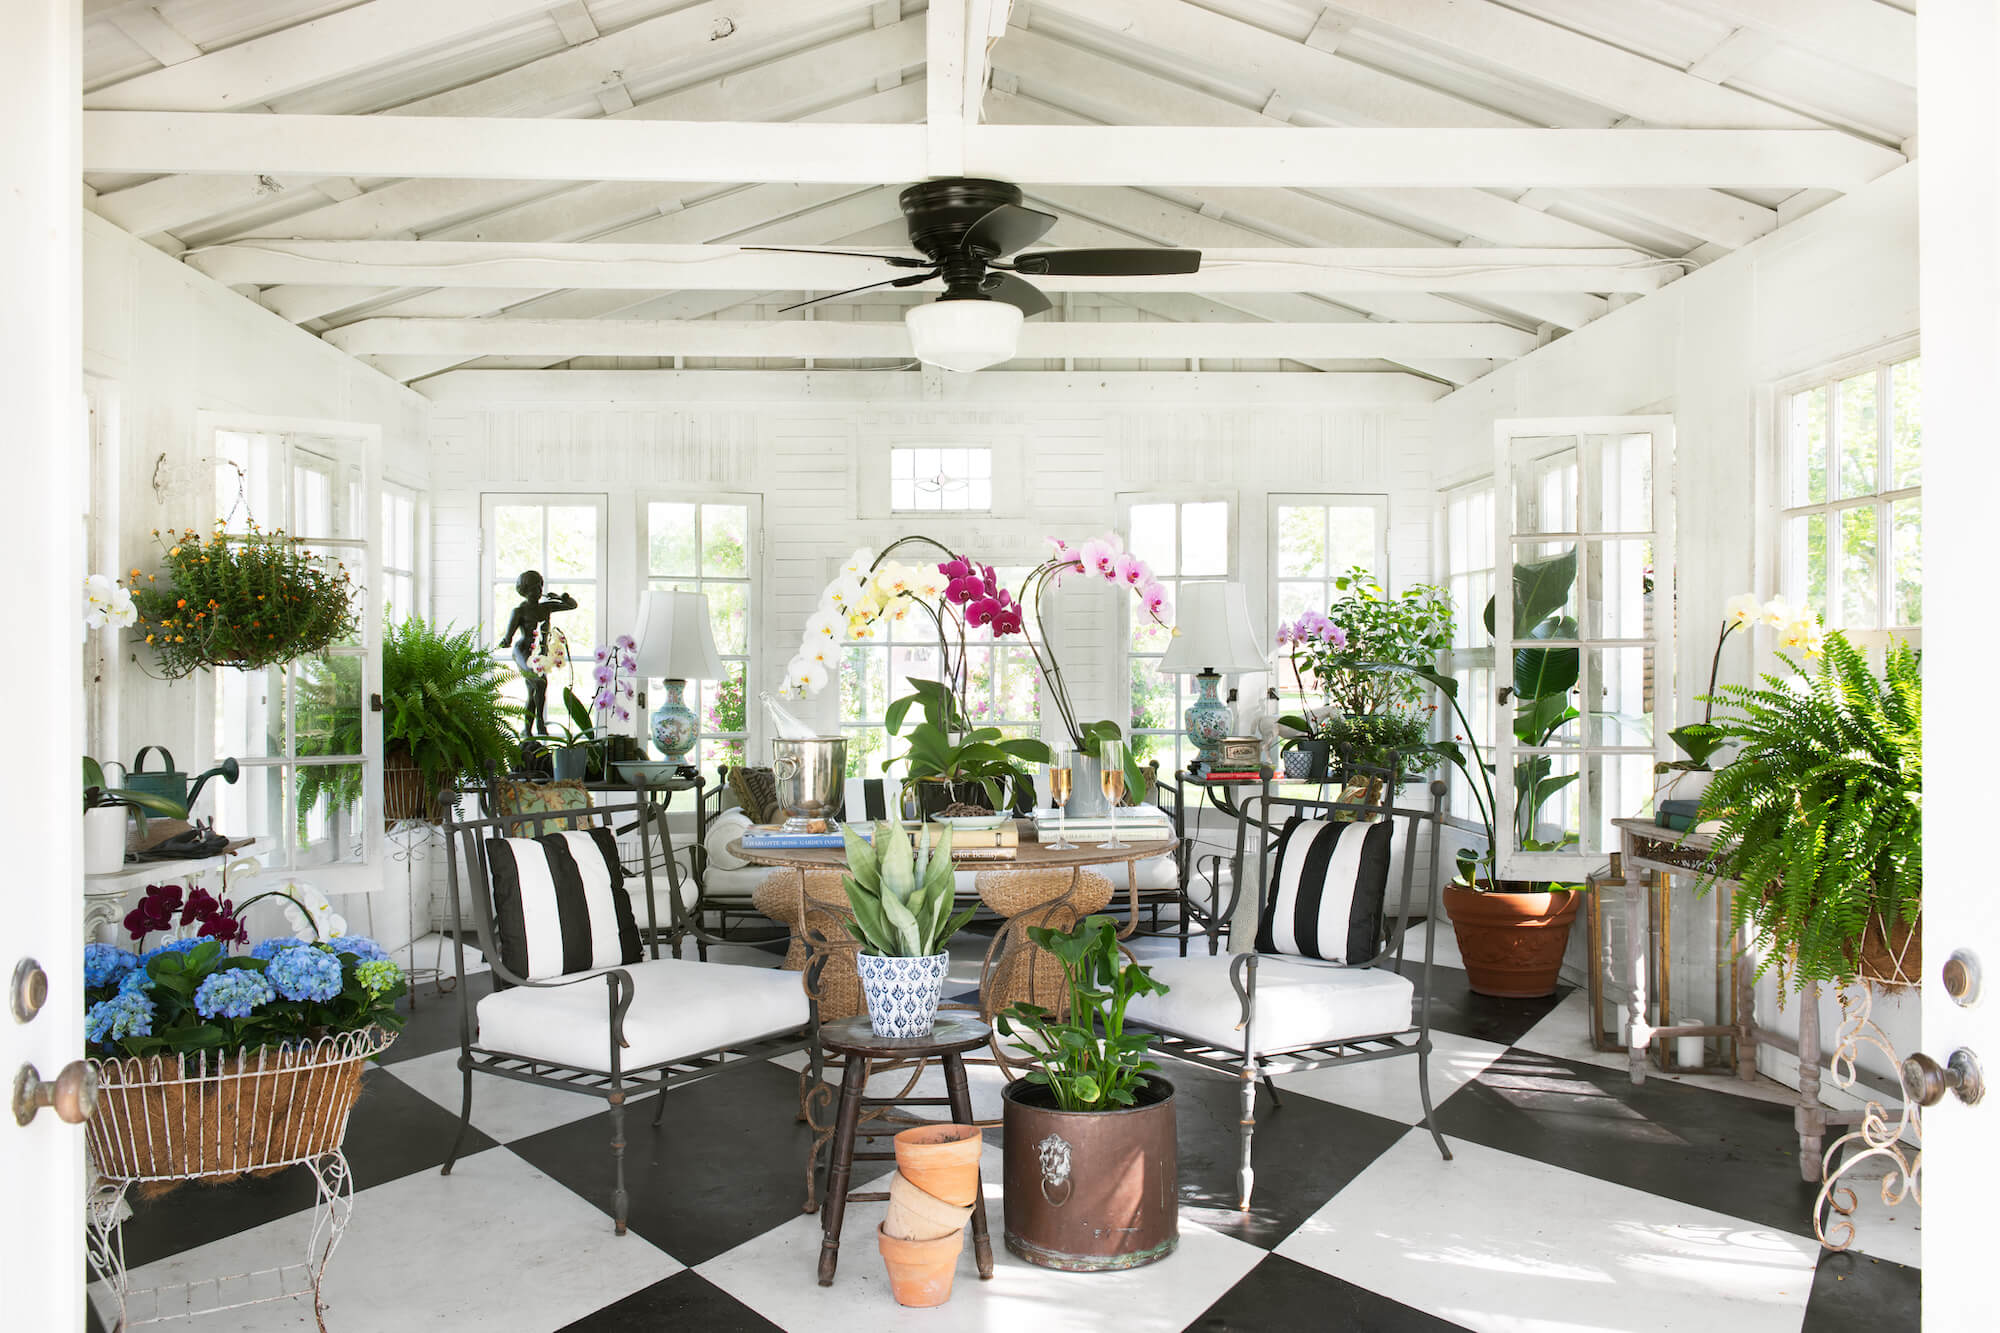 Thomas Guy Interiors carriage house and garden shed